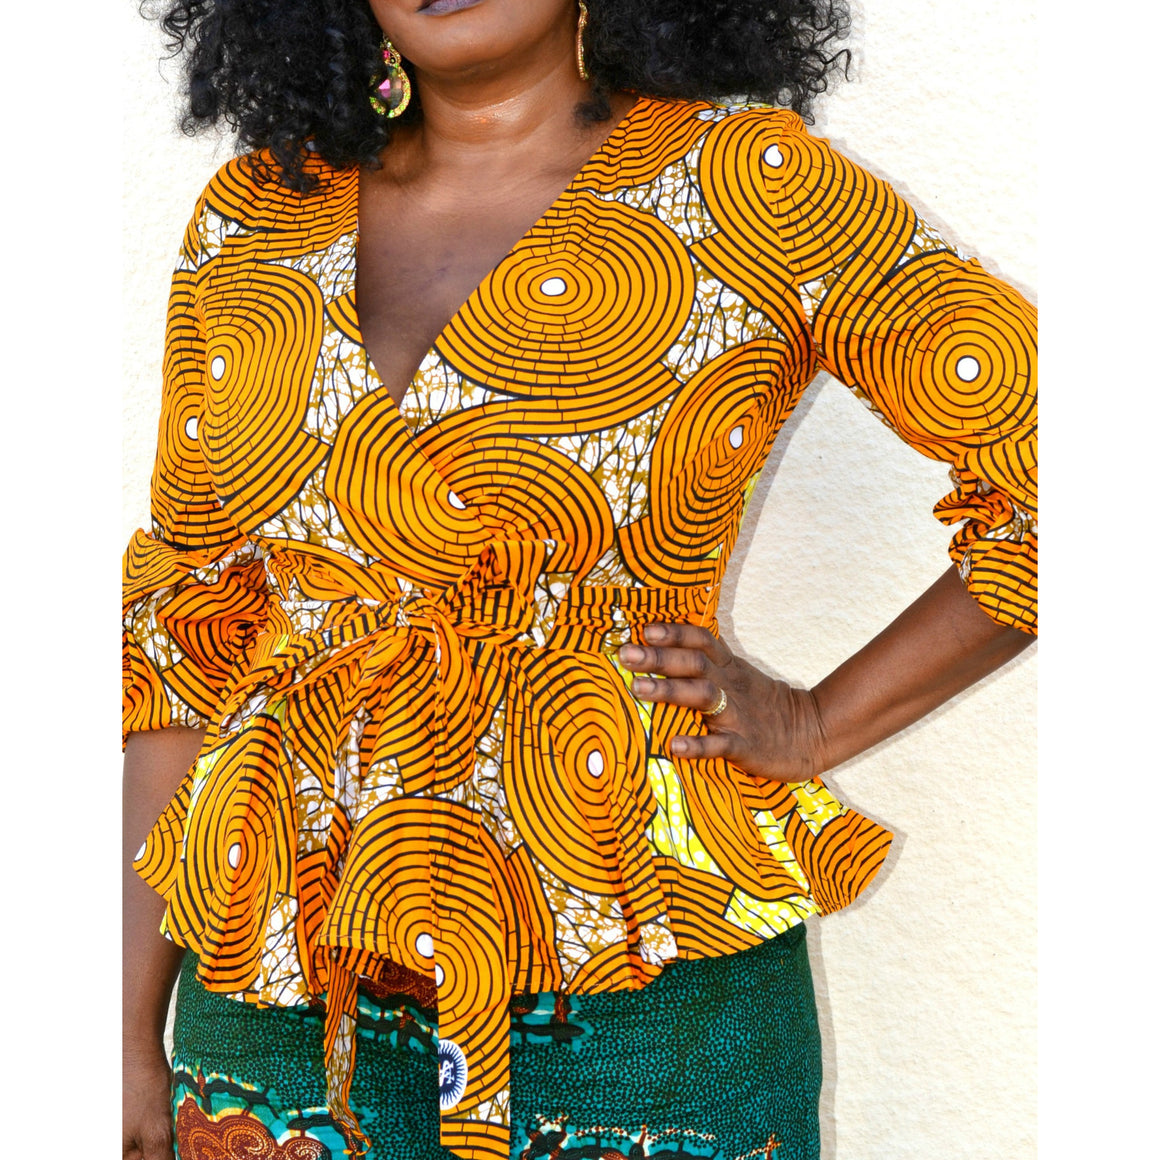 HATI African Print Peplum Top - Zabba Designs African Clothing Store